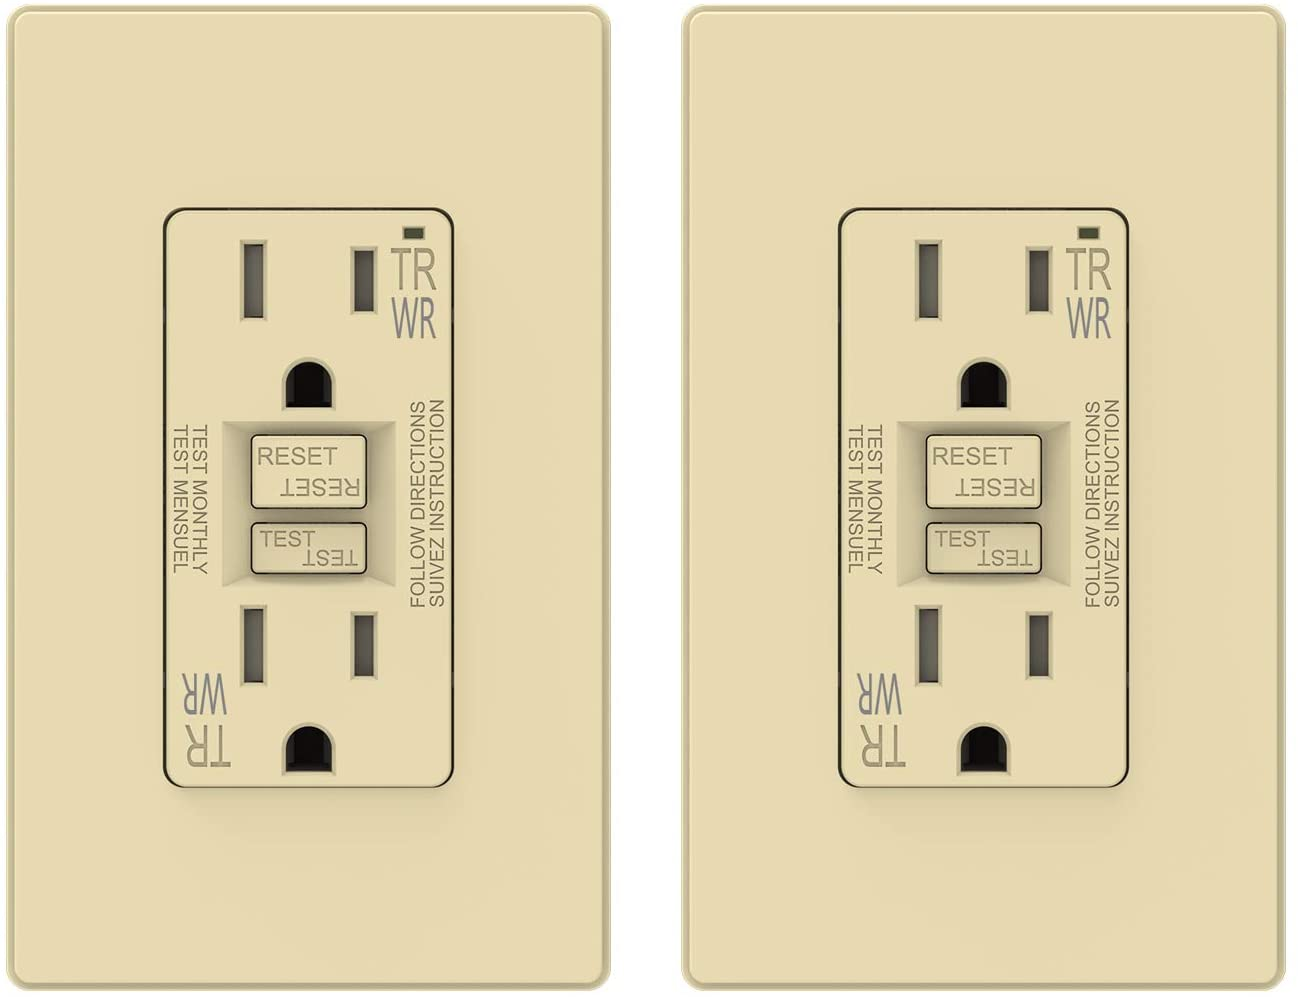 Matte Ivory ELEGRP 15 Amp GFCI Outlet, 5-15R GFI Dual Receptacle, TR Tamper Resistant and WR Weather Resistant, Self-Test Ground Fault Circuit Interrupters, Wall Plate Included, UL Listed (2 Pack)